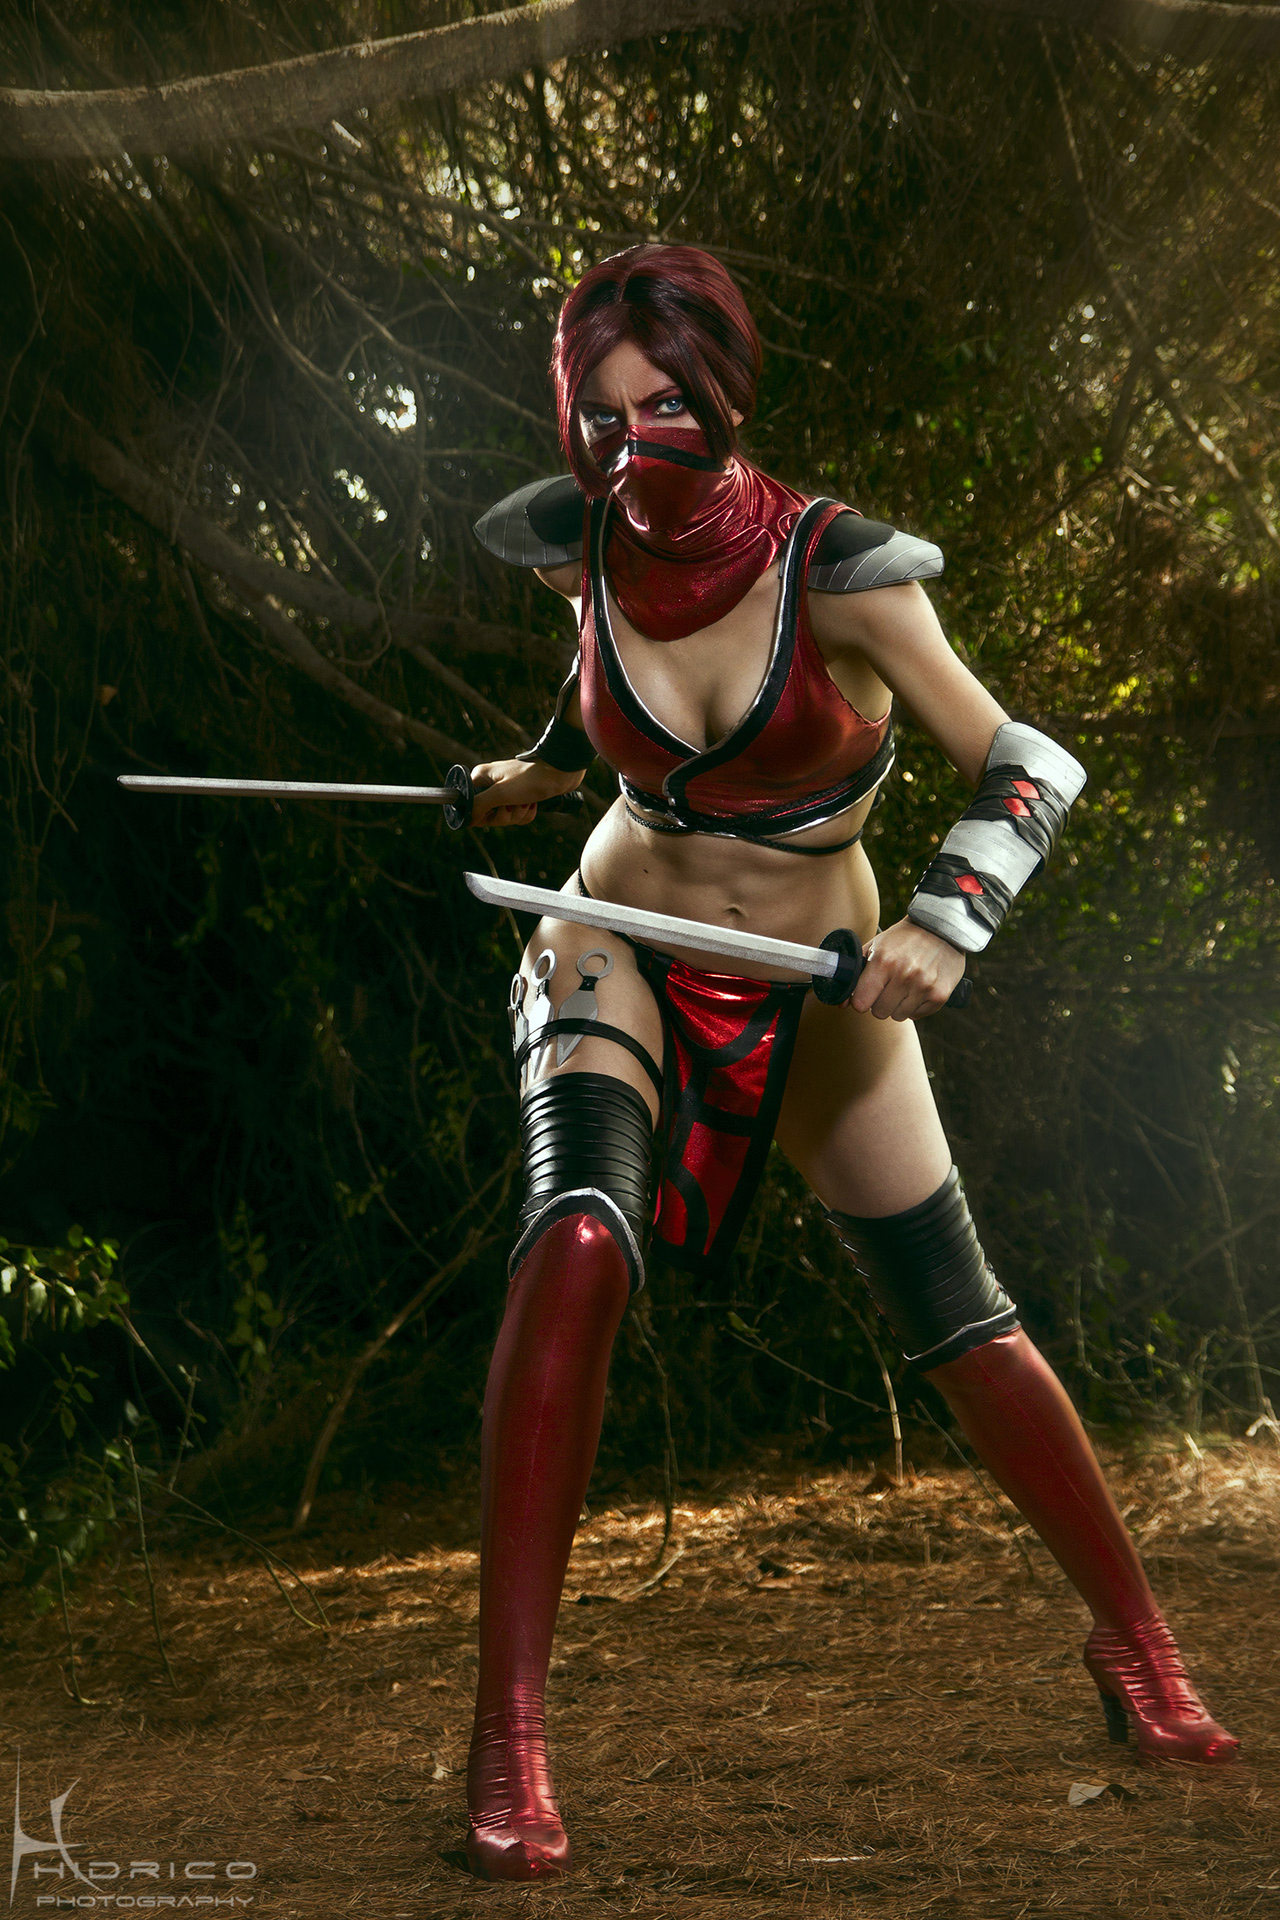 Hidrico's fighting game related cosplay photos #6